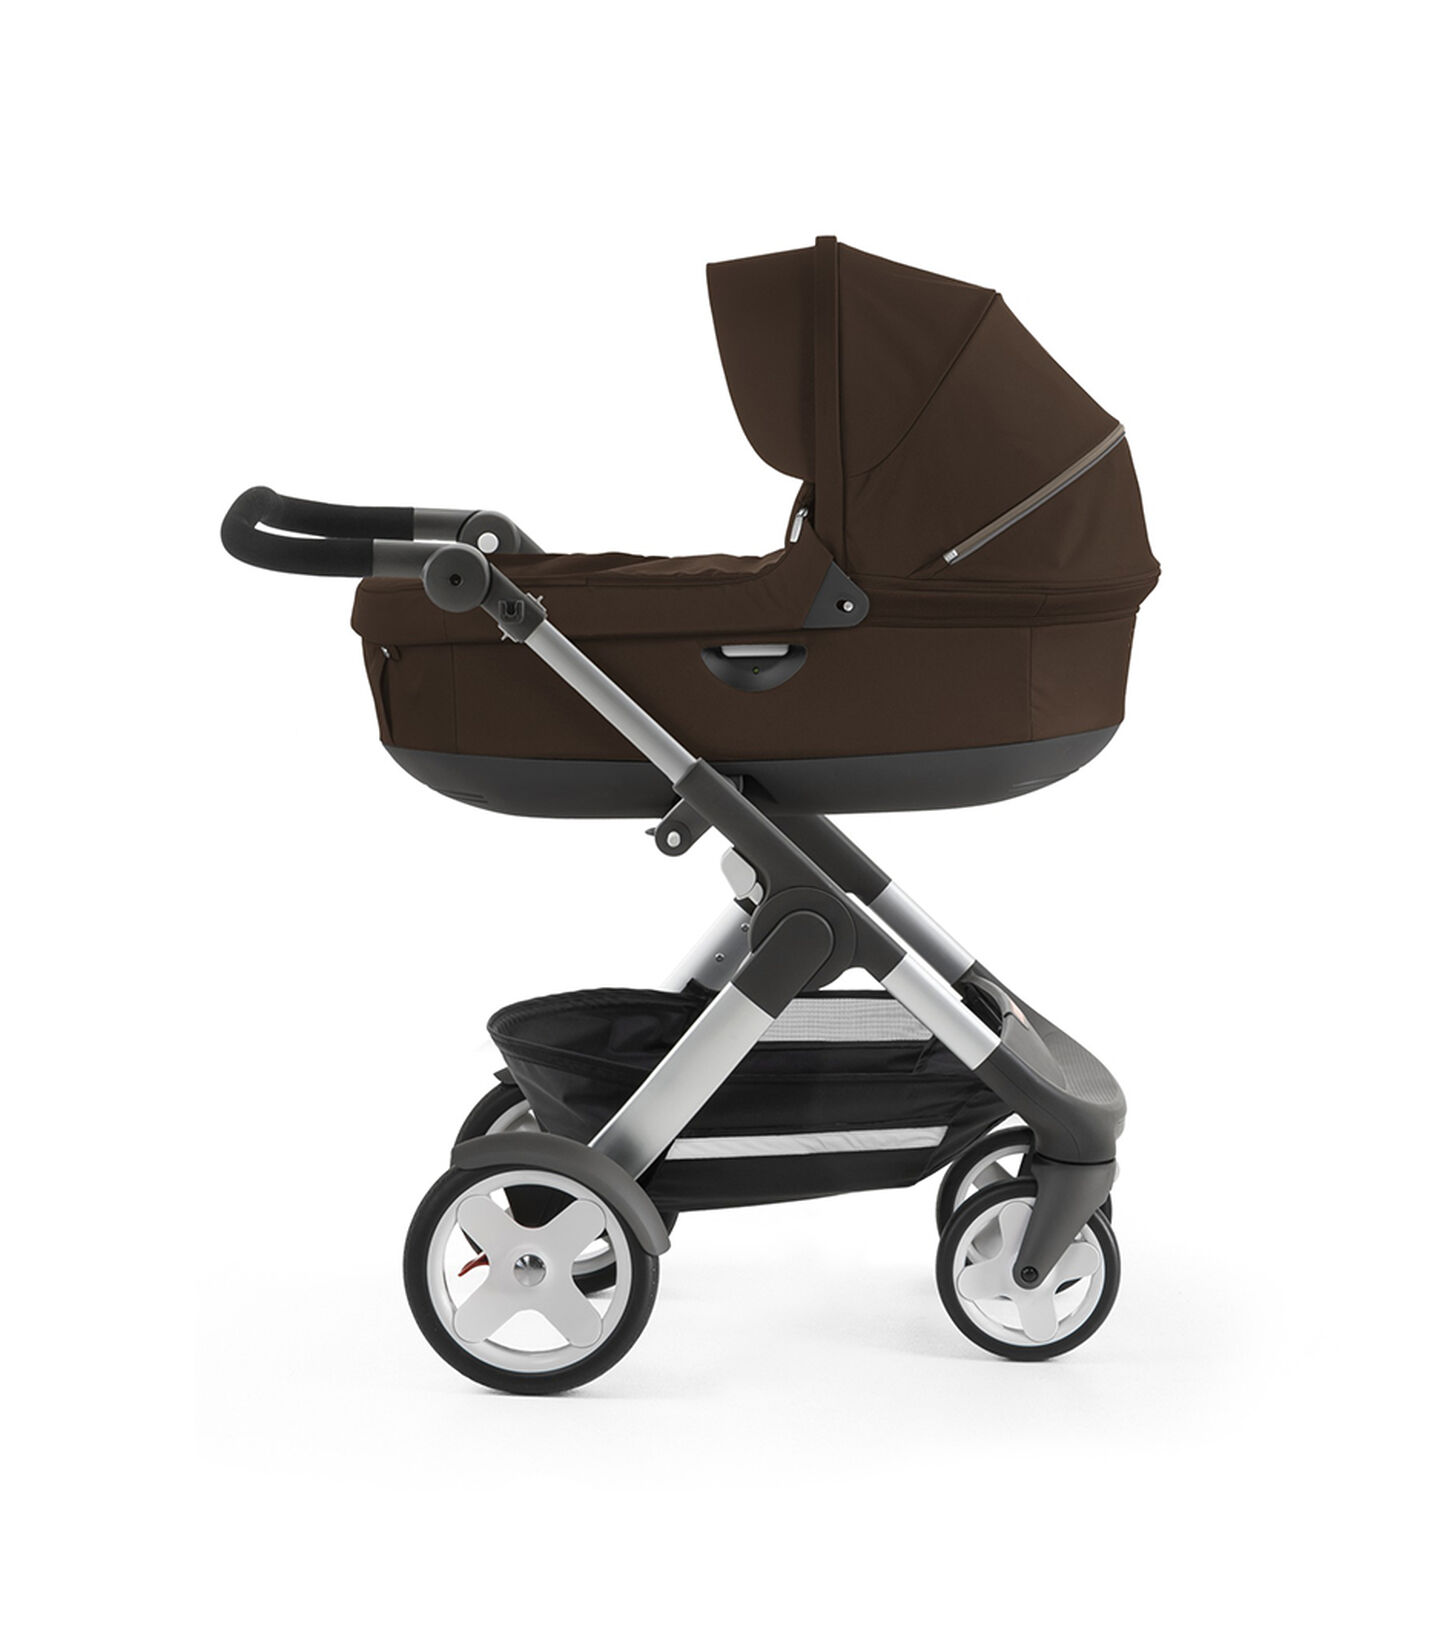 Stokke® Trailz™ Classic w Carry Cot Brown, Brown, mainview view 1